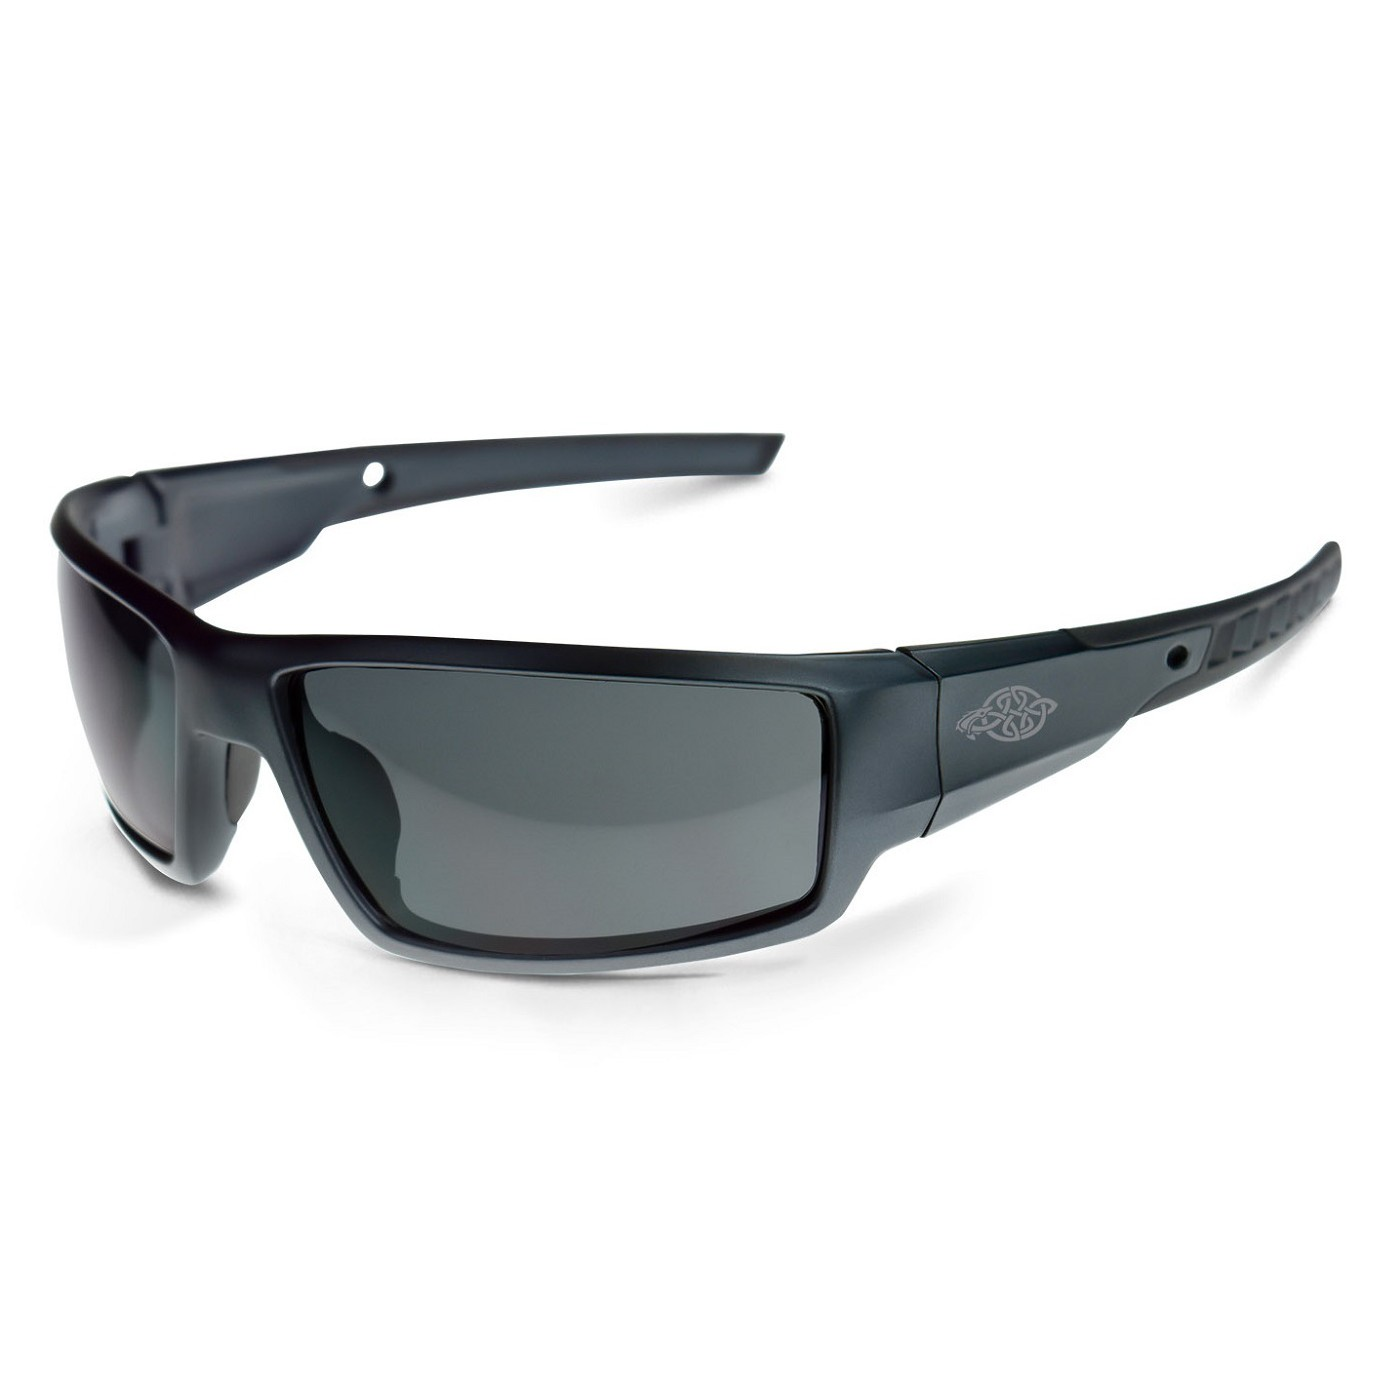 Glasses Gray Frame : CrossFire 41291 Cumulus Safety Glasses - Gray Frame ...